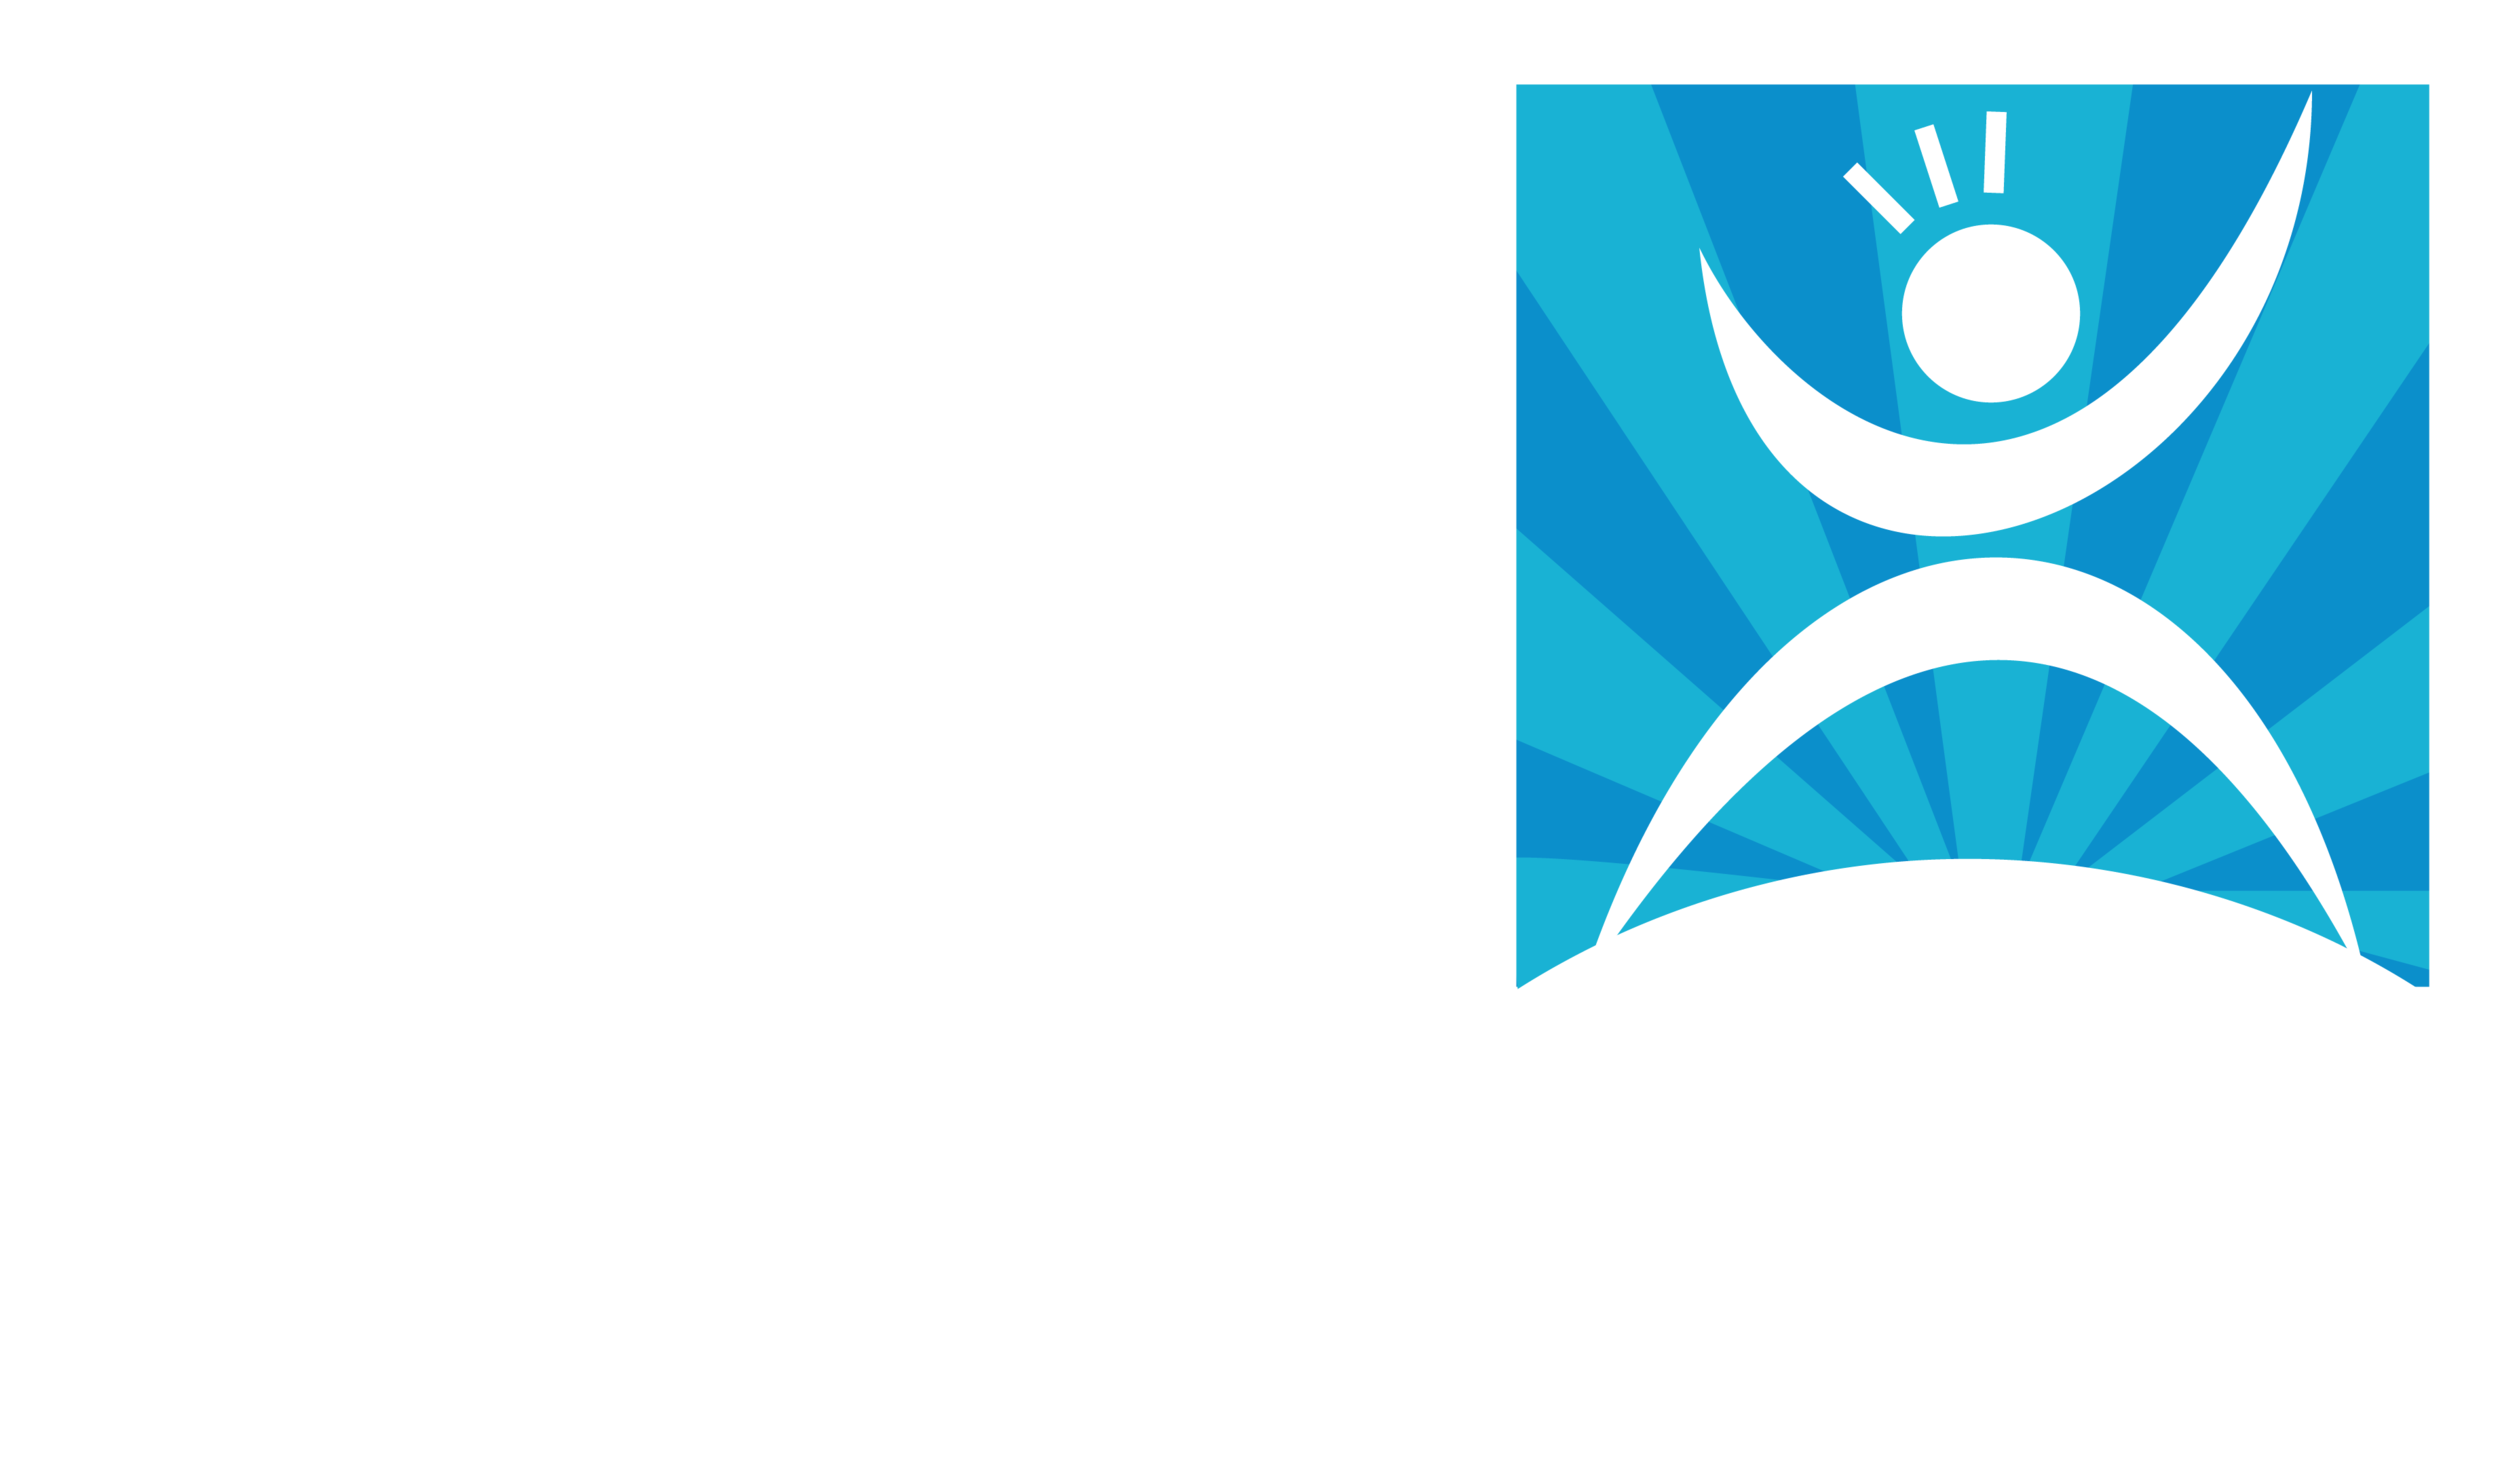 The World Bank 2006 international aid and development beyond water award winning water charity and social enterprise